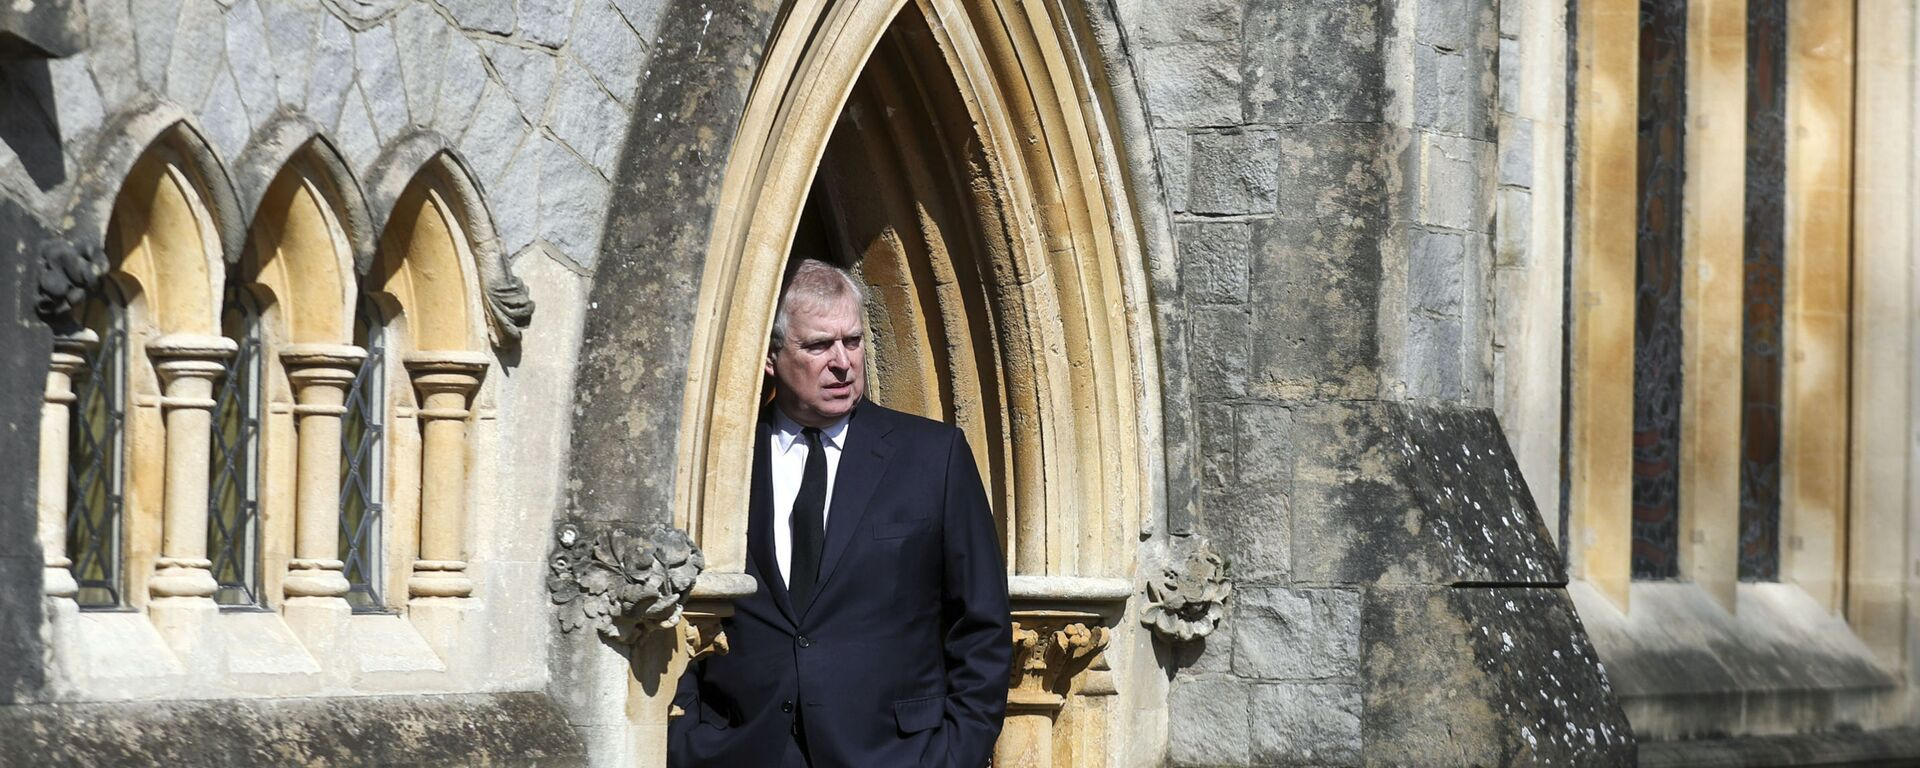 Britain's Prince Andrew attends the Sunday service at the Royal Chapel of All Saints at Royal Lodge, Windsor, following the death announcement of his father, Prince Philip, in England, Sunday, April 11, 2021. - Sputnik International, 1920, 11.09.2021